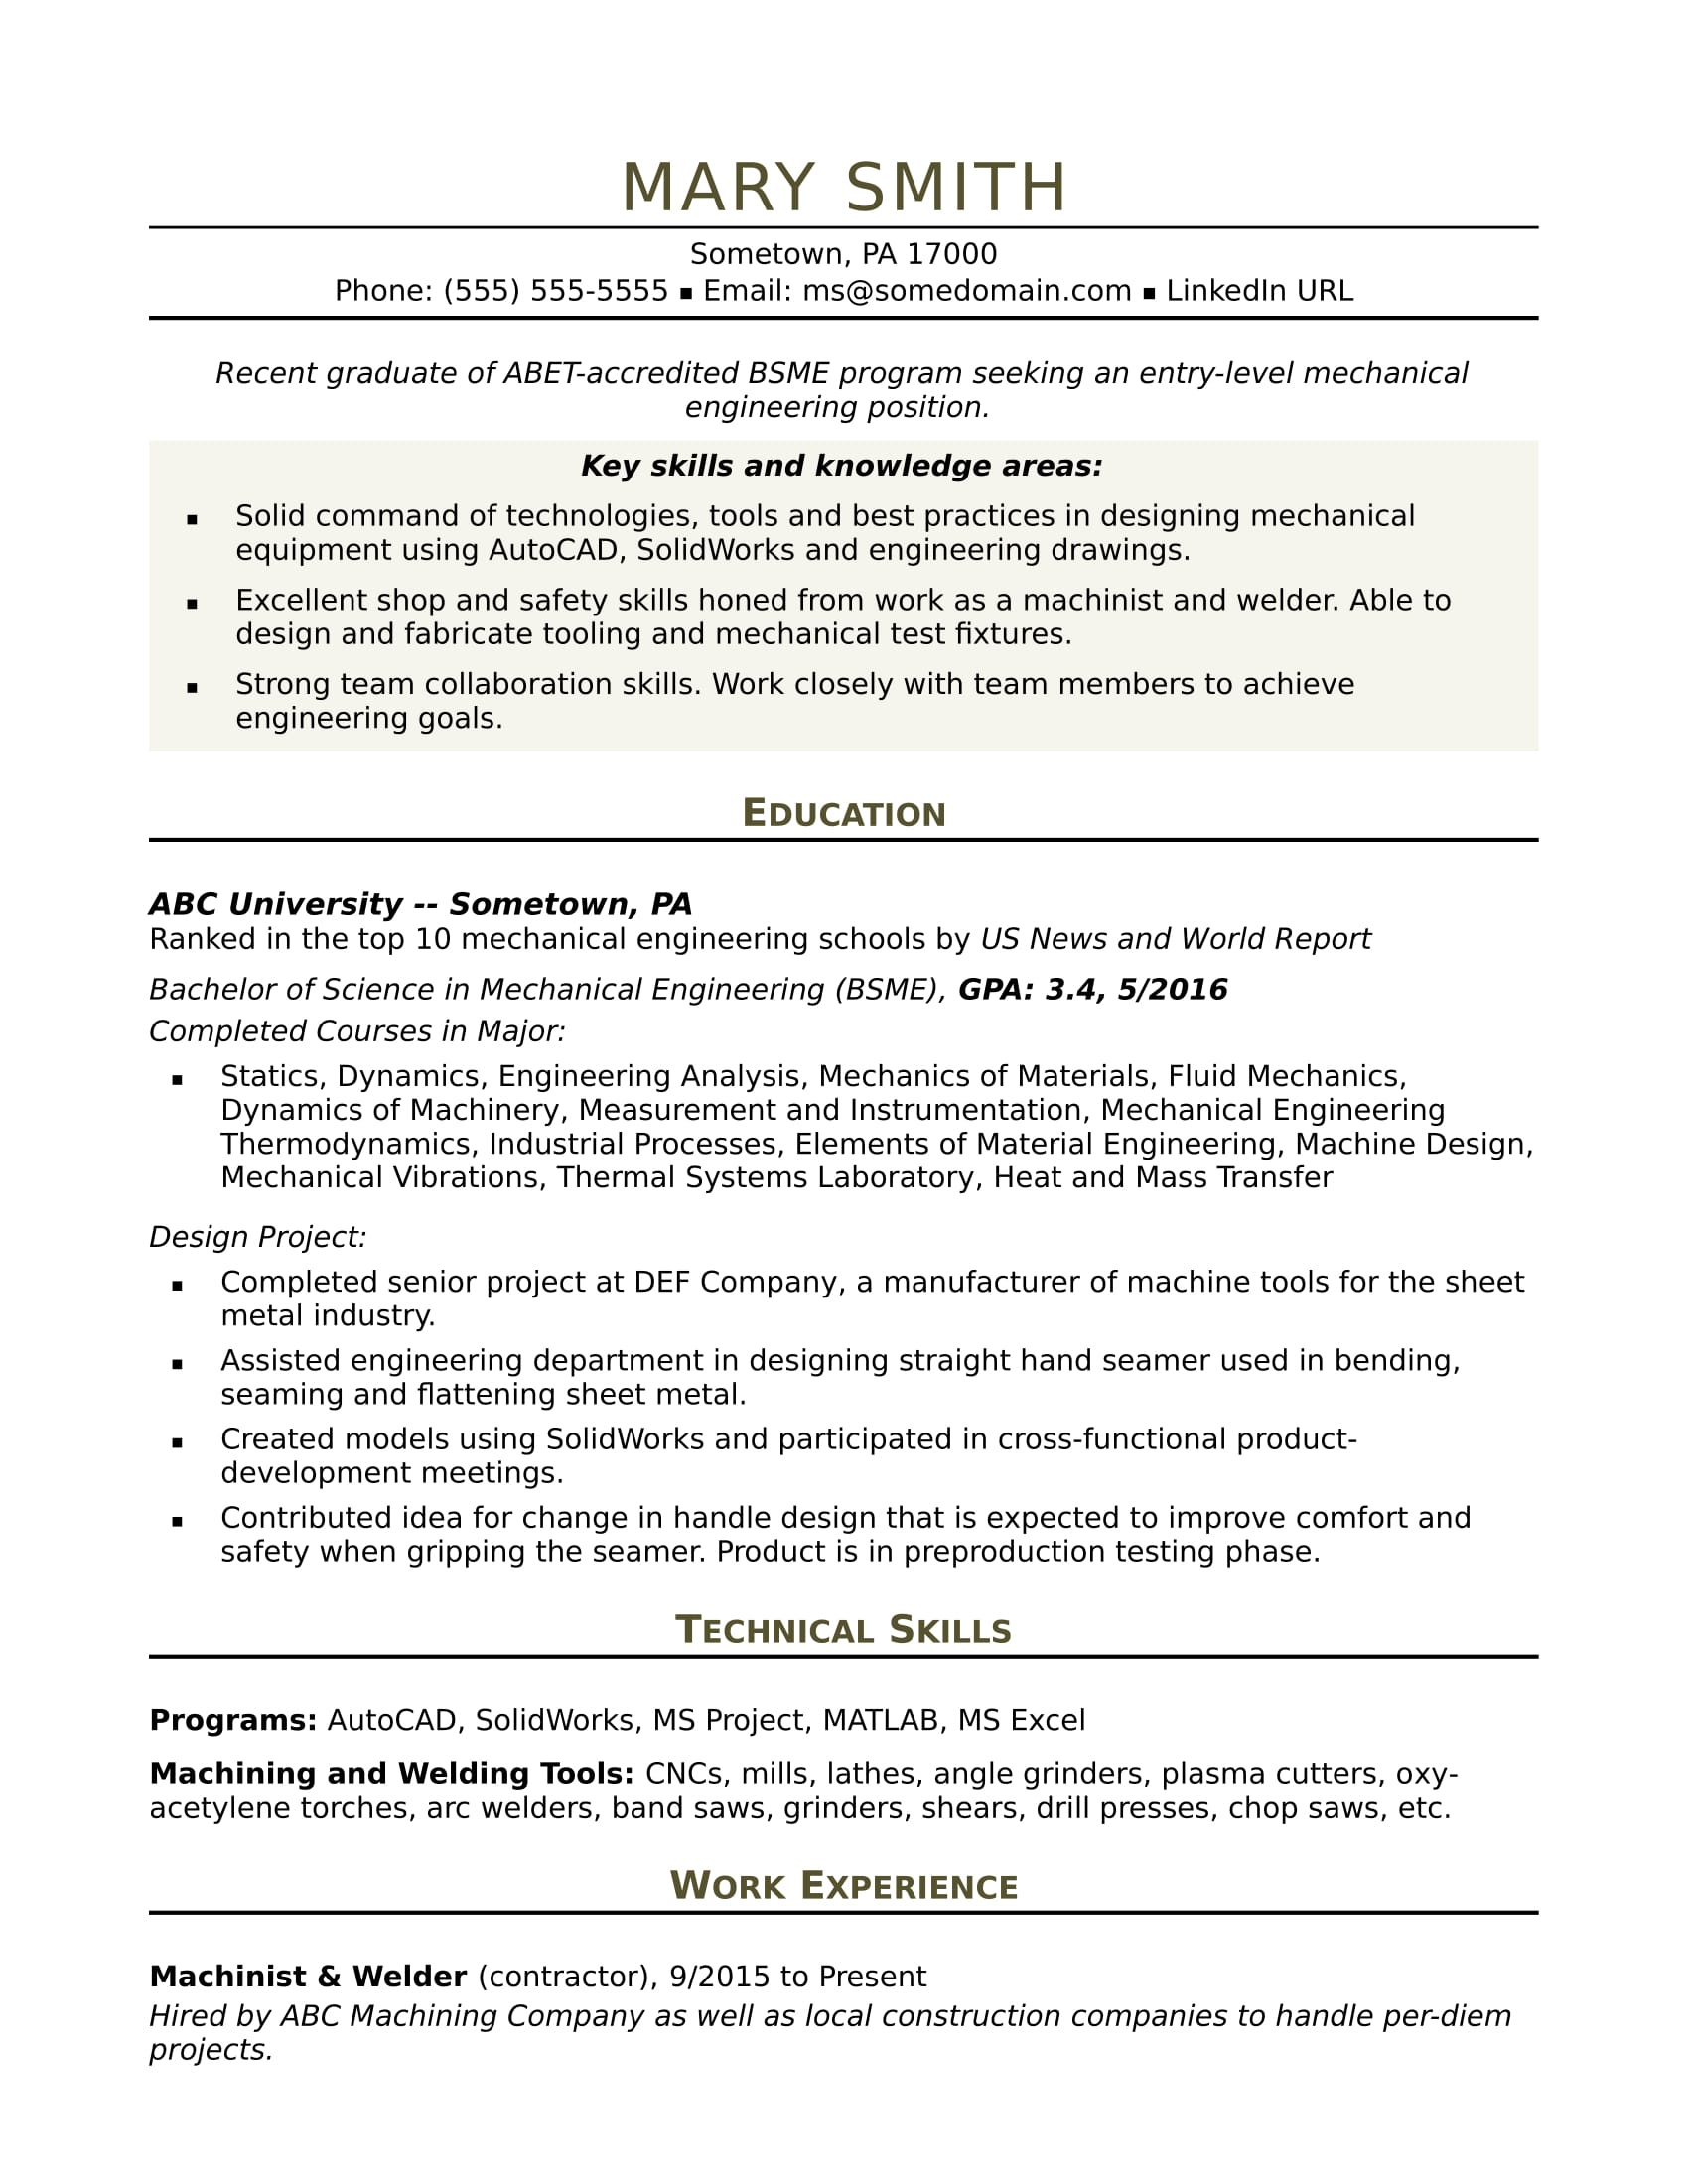 sample resume for an entry level mechanical engineer monster engineering student examples Resume Mechanical Engineering Student Resume Examples